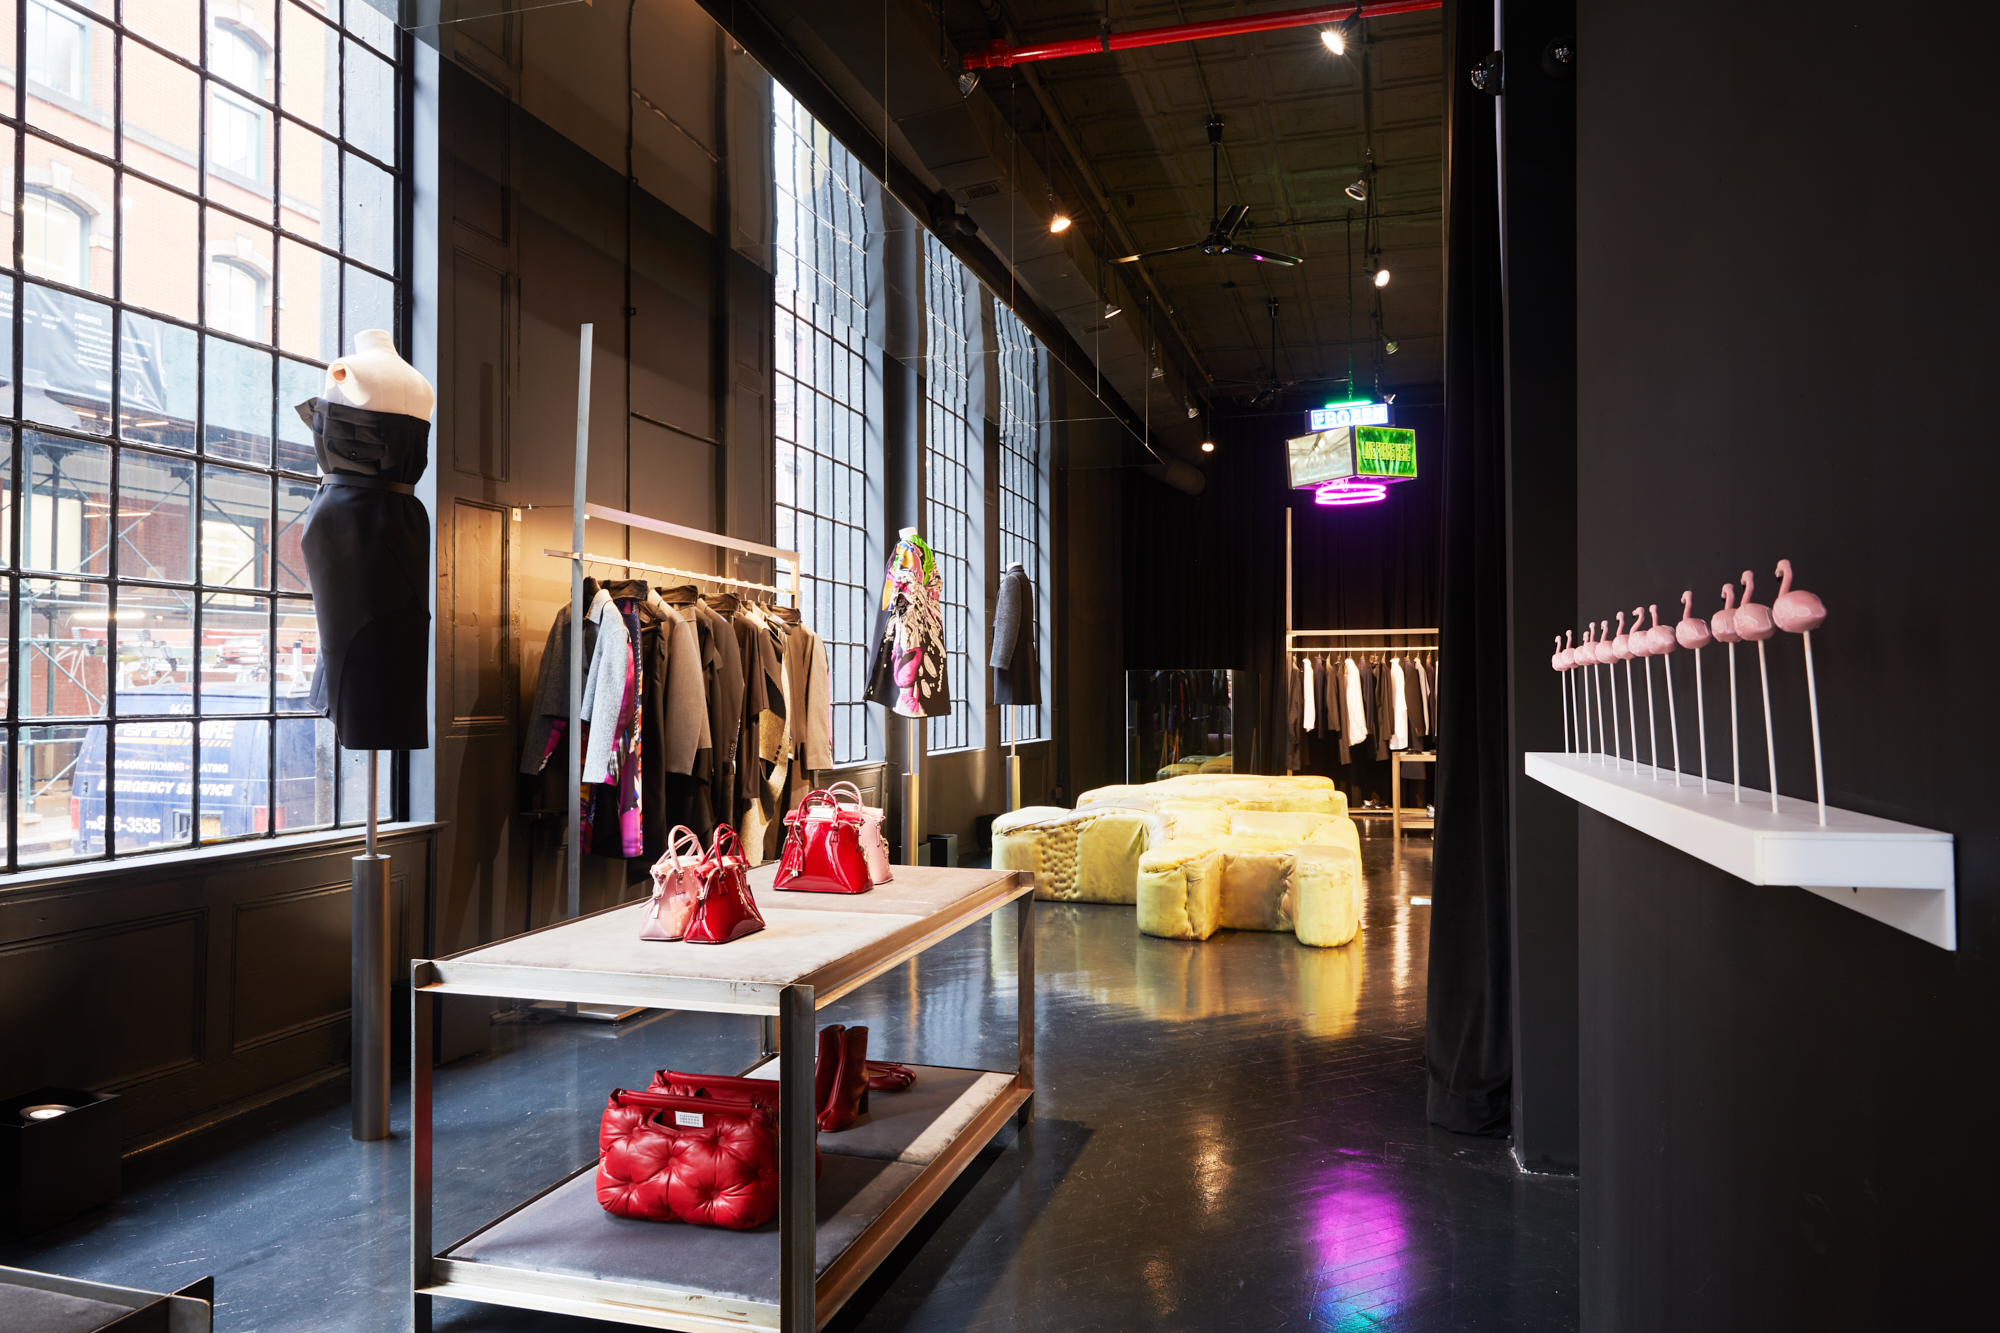 Maison Margiela's new Transitory Concept store with Jessi Reaves' functional sculpture in the background and Tabor Robak's mini Jumbotron hanging from the ceiling.